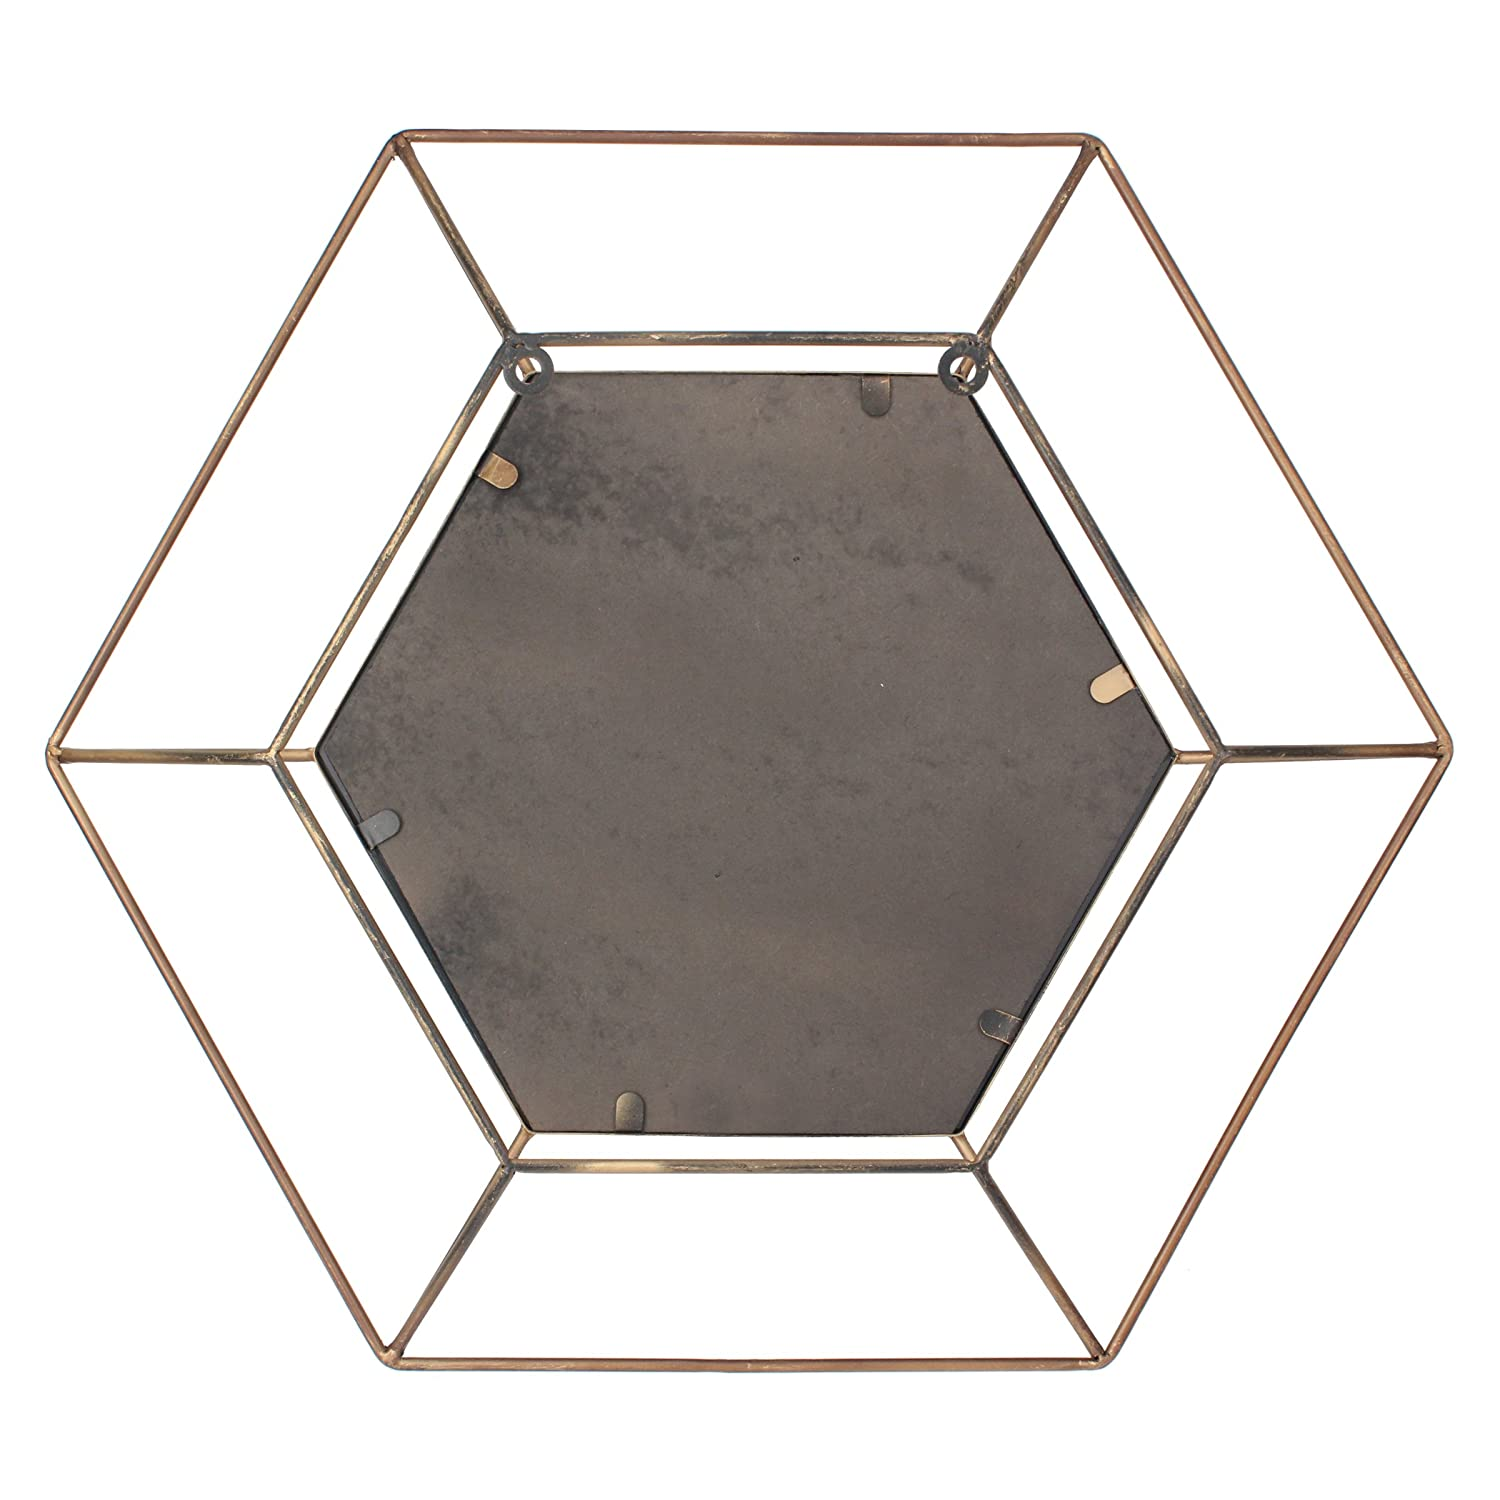 Bathroom Modern Geometric Decor for the Living Room Stonebriar Decorative Antique Gold 24 Hexagon Metal Frame Hanging Wall Mirror with Mounting Brackets Bedroom and Entryway CKK Home Decor SB-6141A